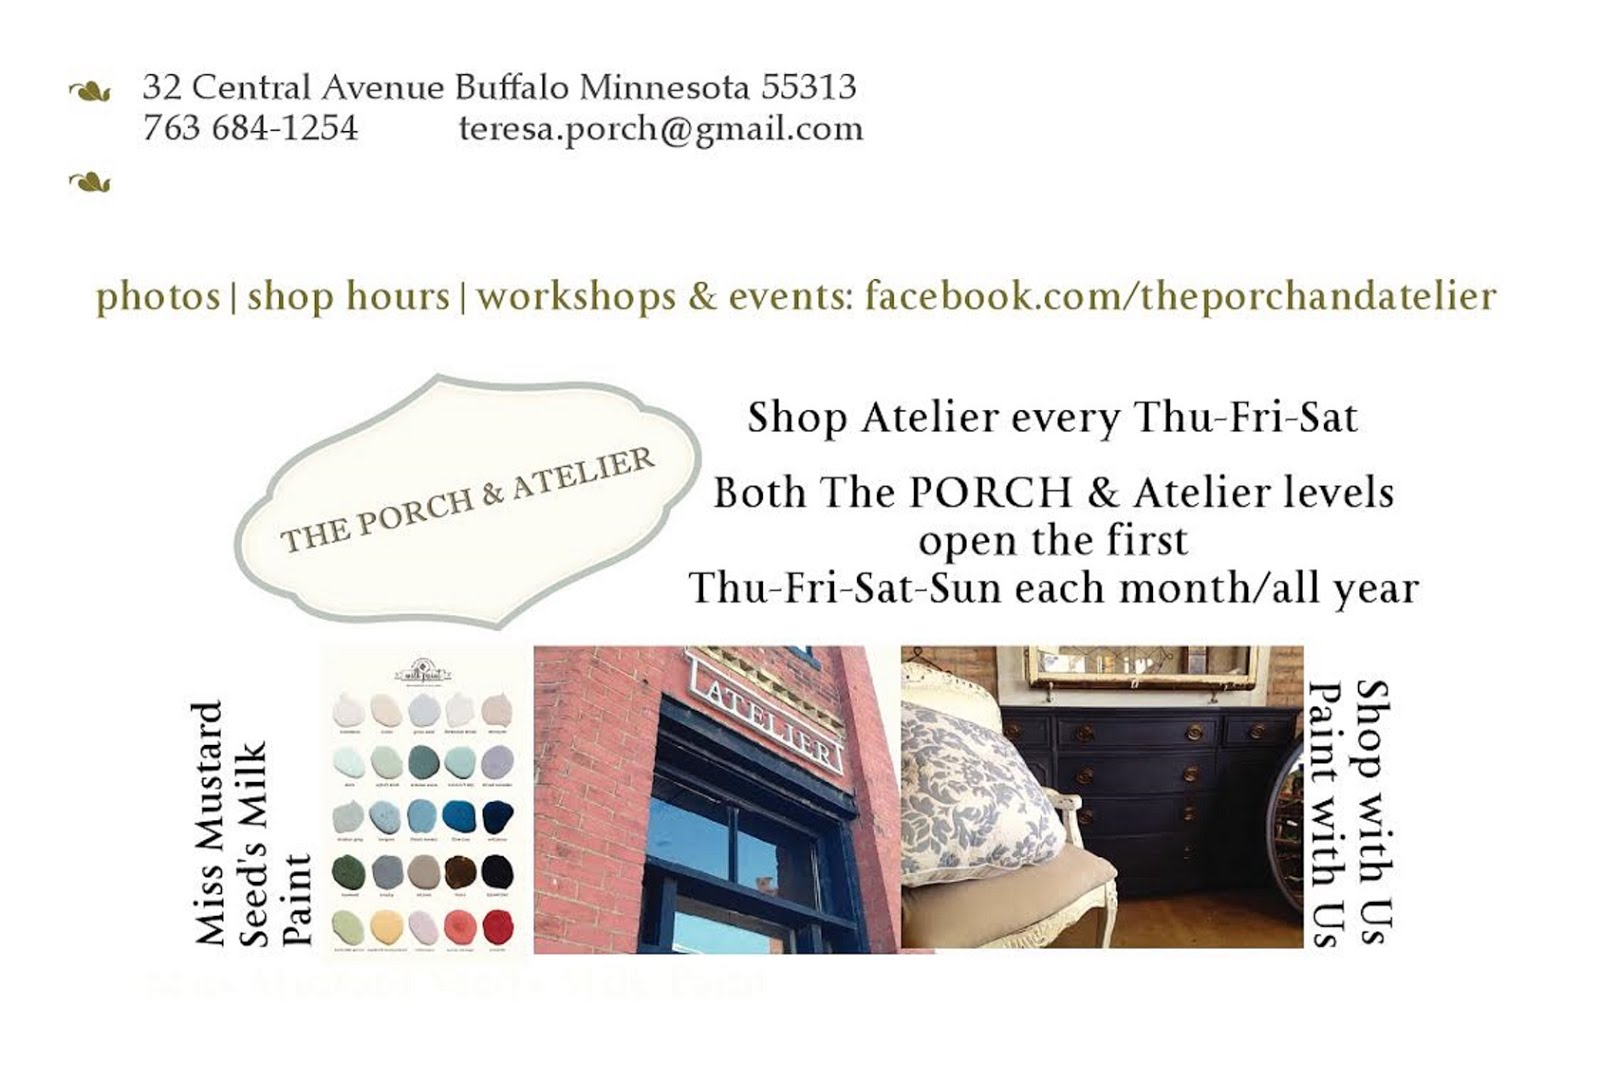 Atelier is open Thu-Fri-Sat each week. Shop both levels 1st Thu-Fri-Sat-Sun each month